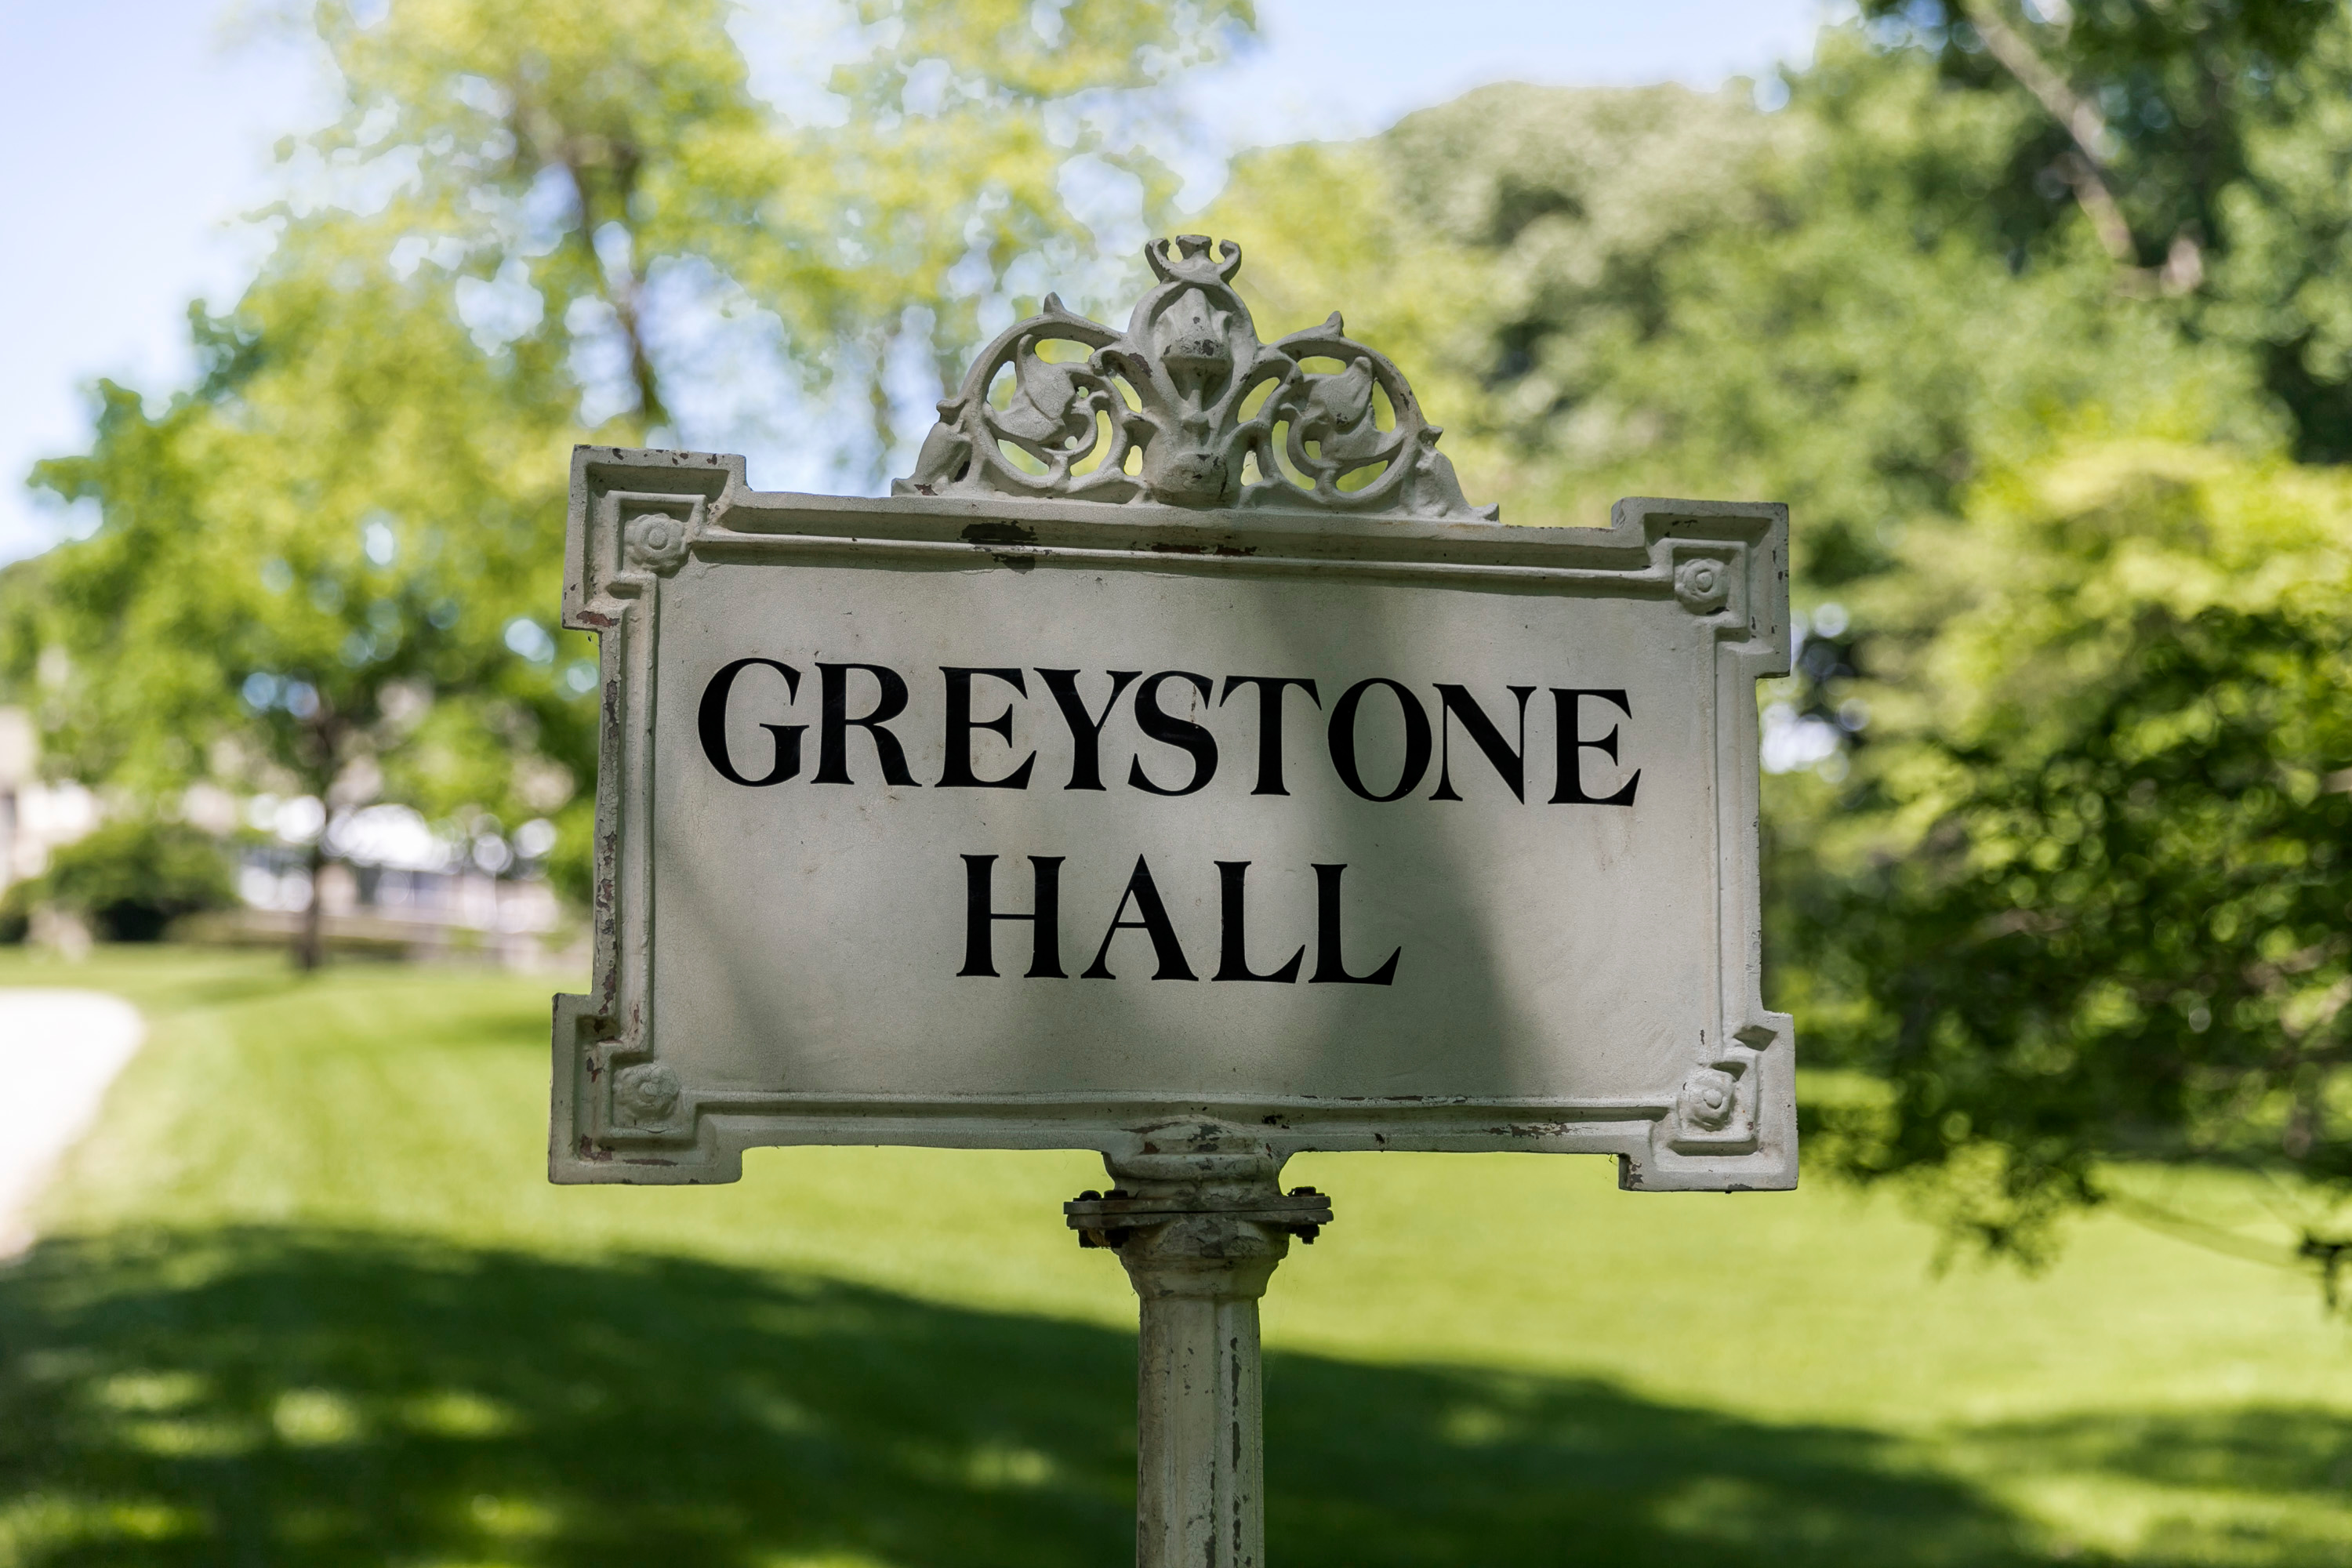 This spectacular new community is on the estate of Greystone Hall, built in 1907.